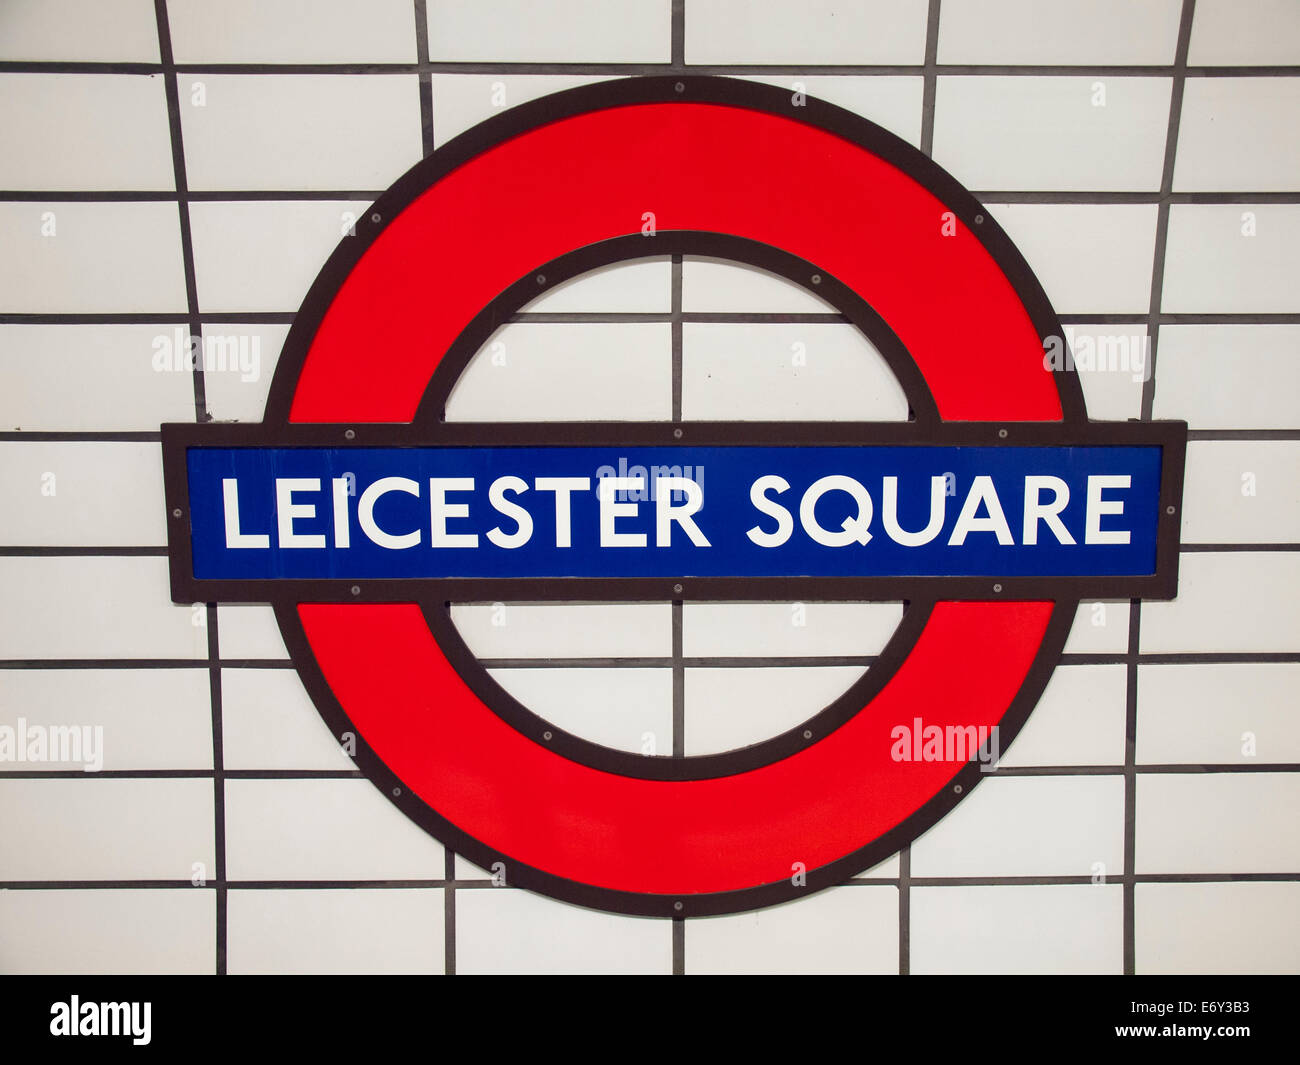 london underground symbol for leicester square station against  white tiled wall - Stock Image